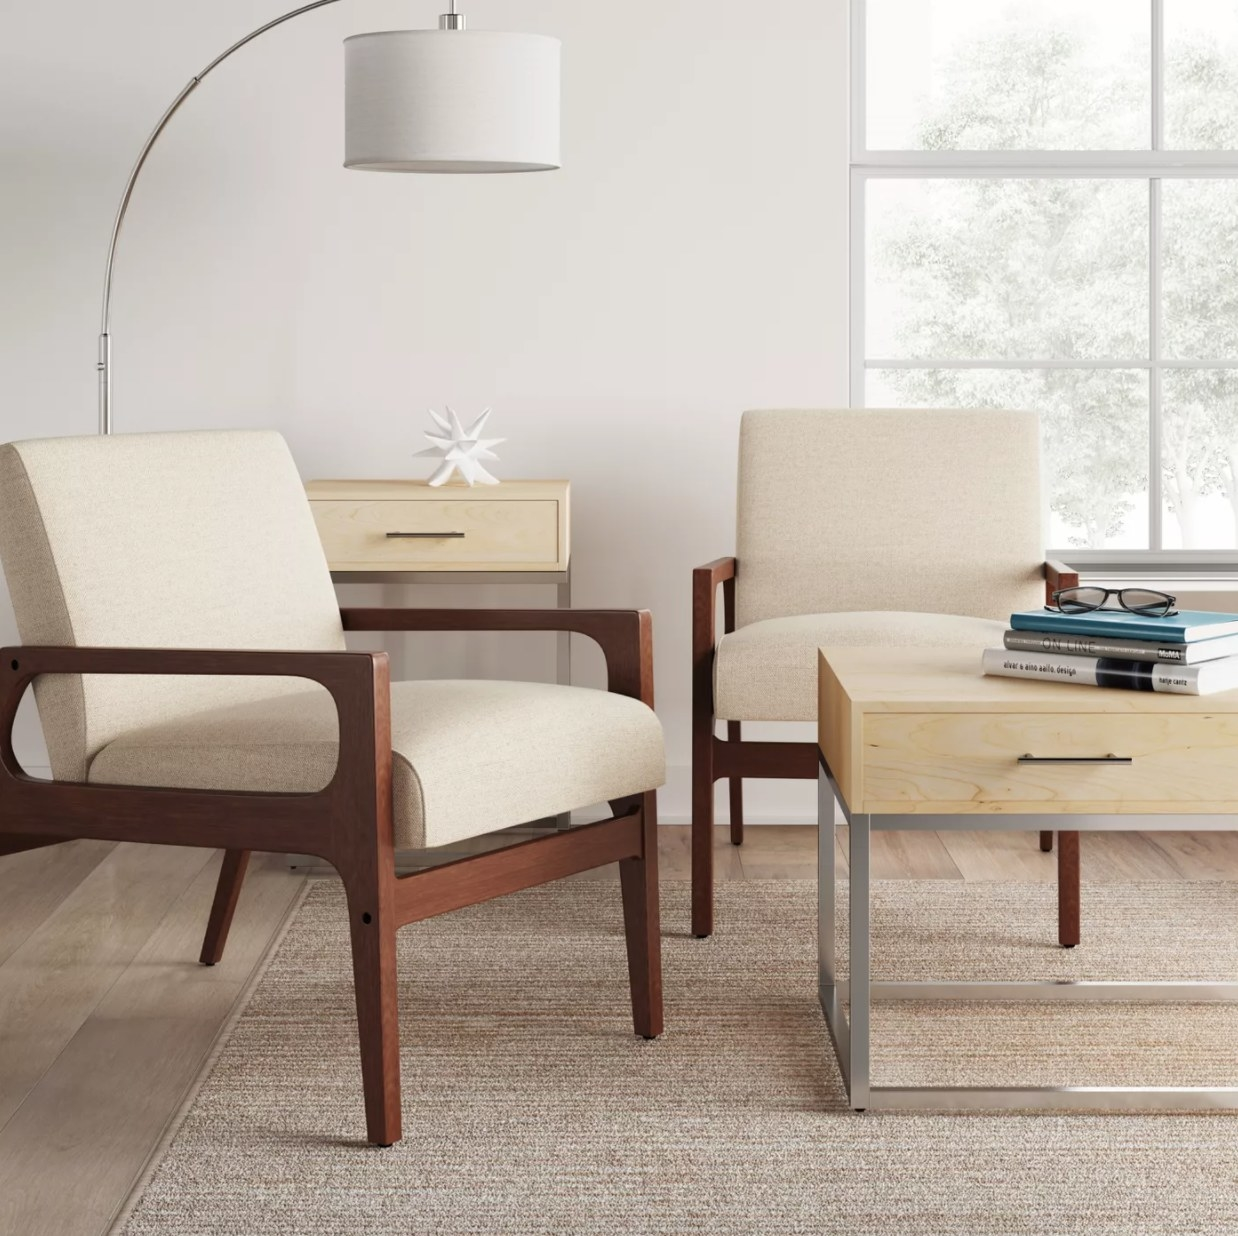 A cream-colored accent chair with wooden frame